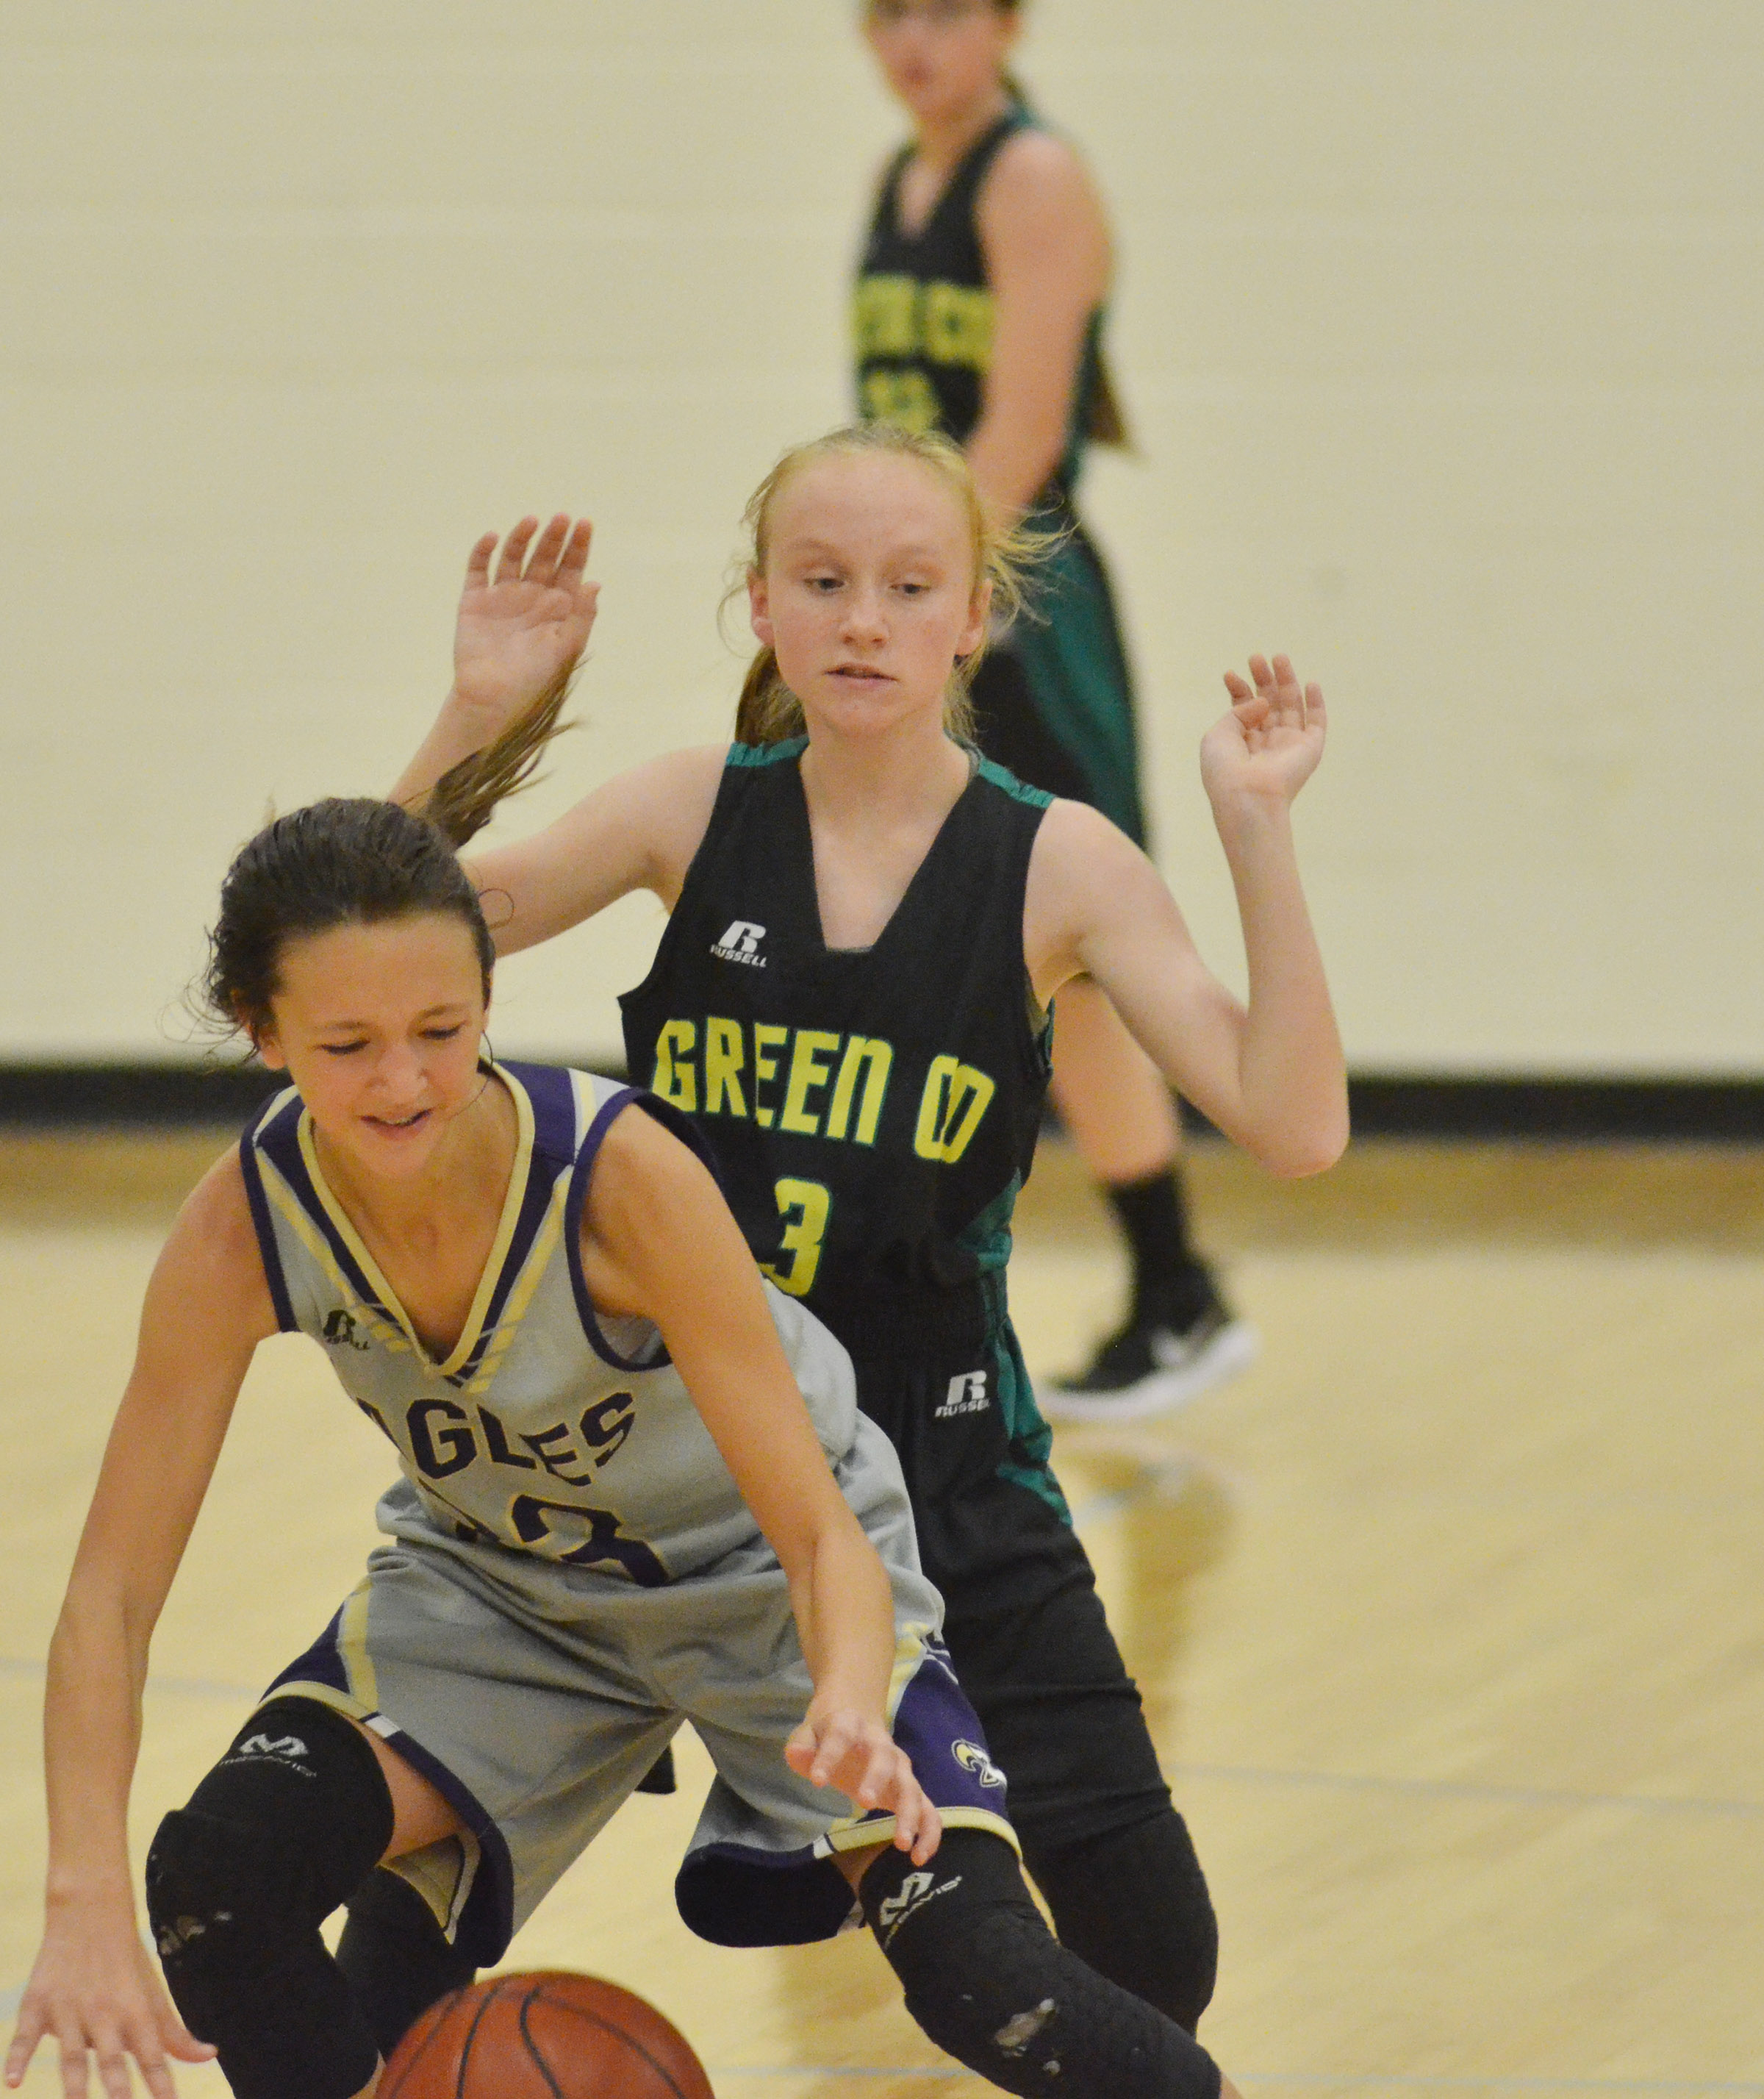 CMS seventh-grader Bri Hayes battles for the ball.